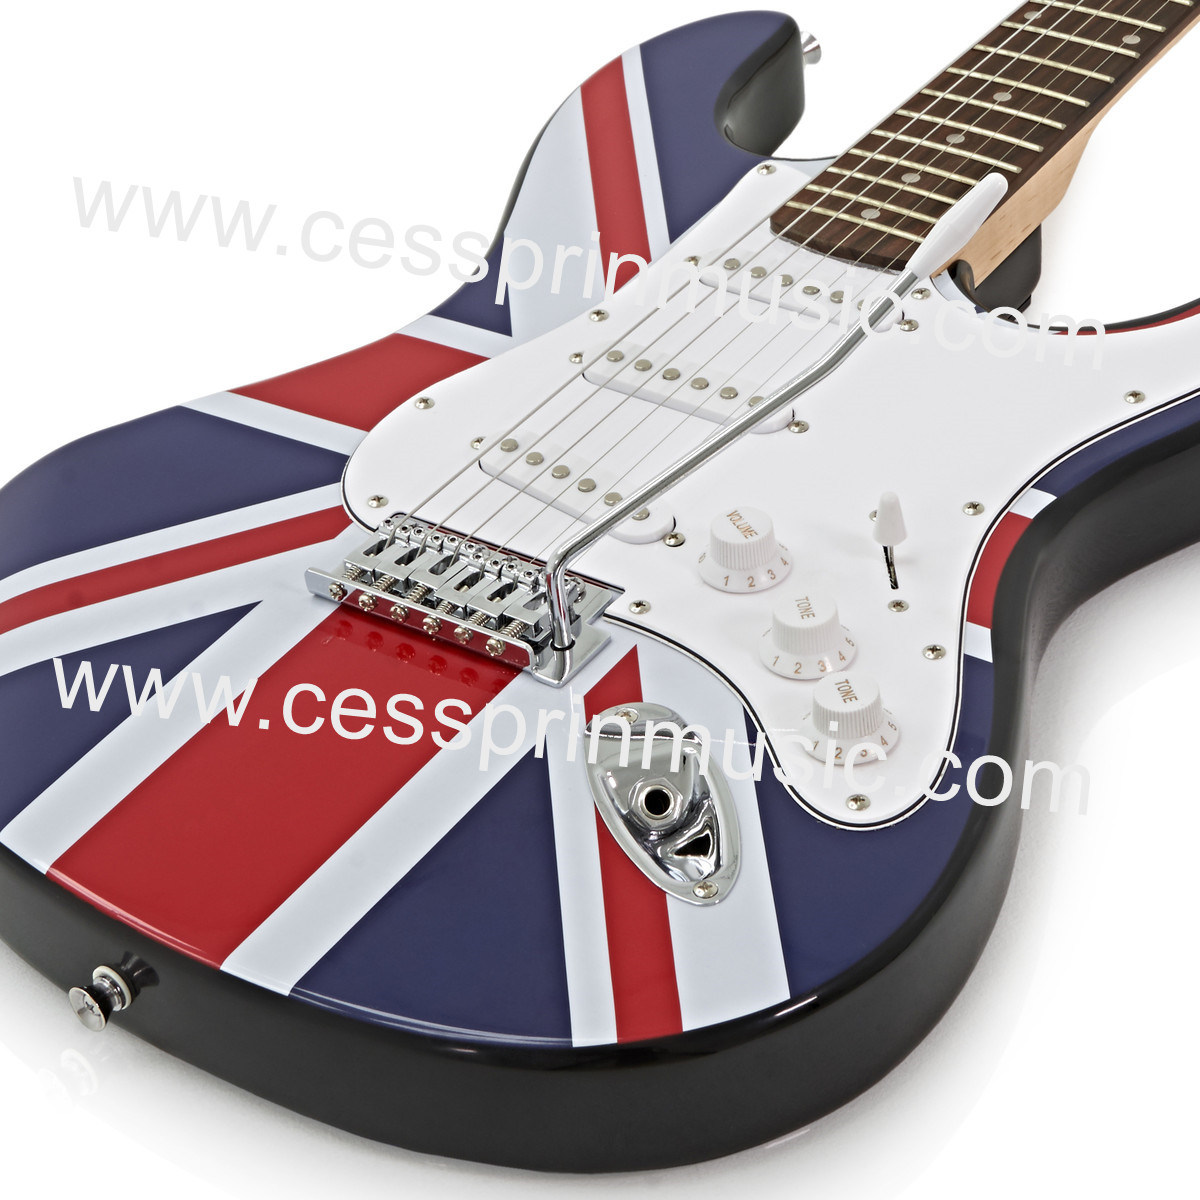 China Wholesales Stickers Electric Guitar Lp To String A Guitarguitar Technique Acoustic Supplier Manufacturer Cessprin Music St604 The National Flag